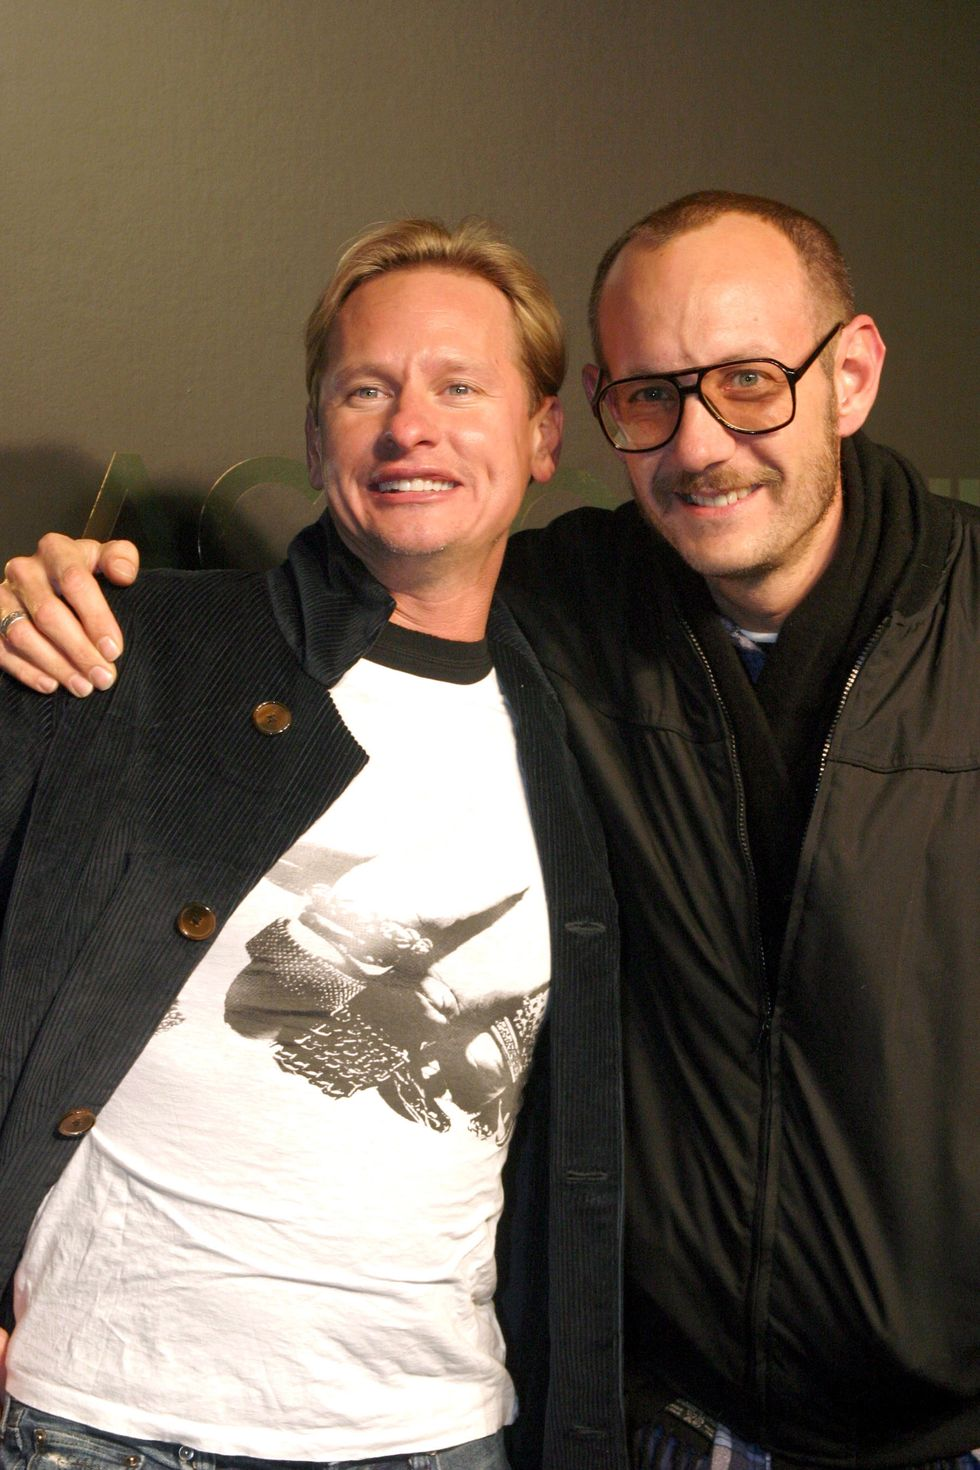 More from the Tom Ford Party: Carson Kressley Meets Terry Richardson